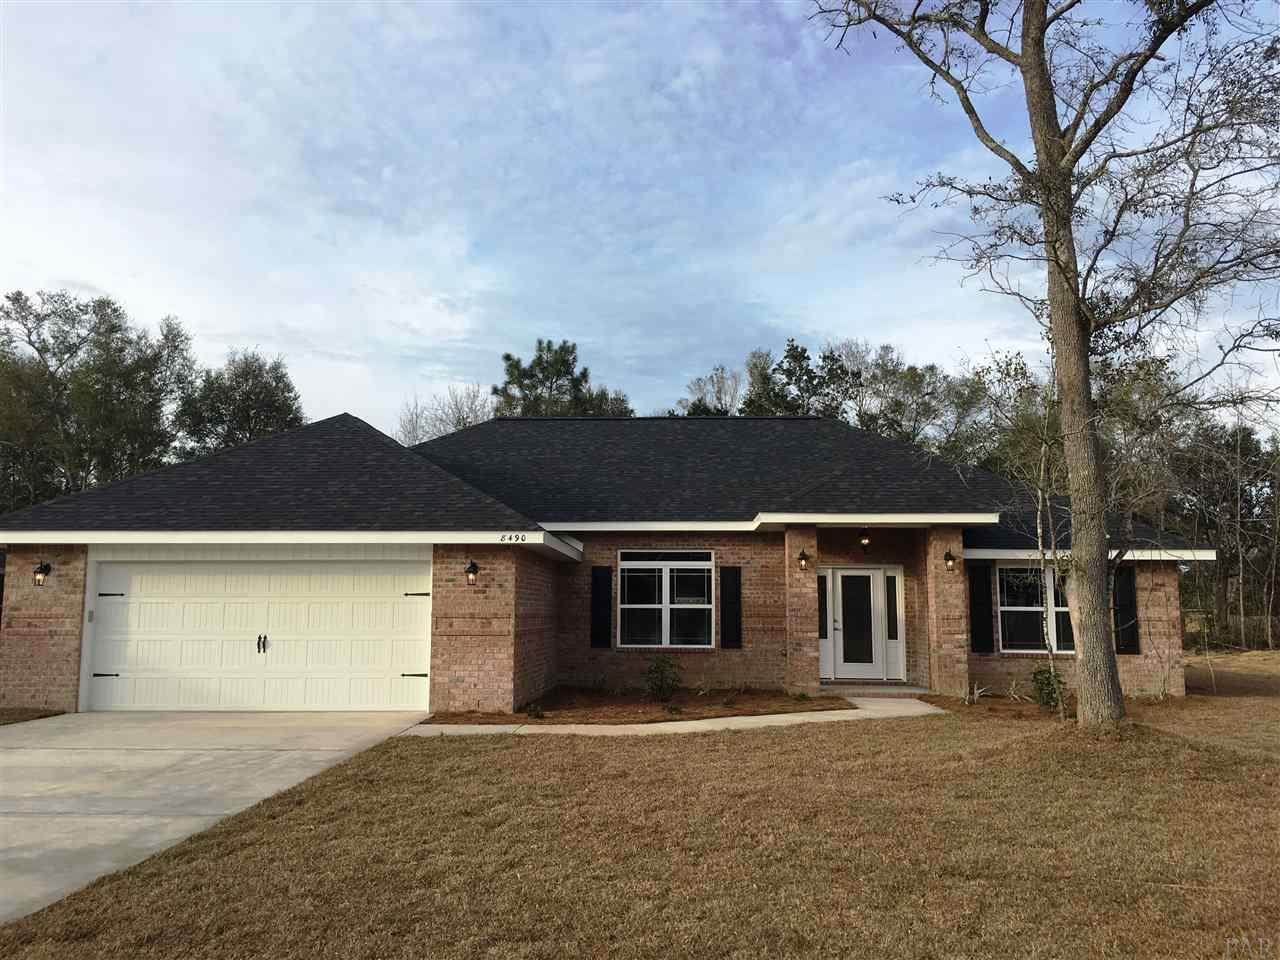 7381 Forestwood Dr - Photo 1